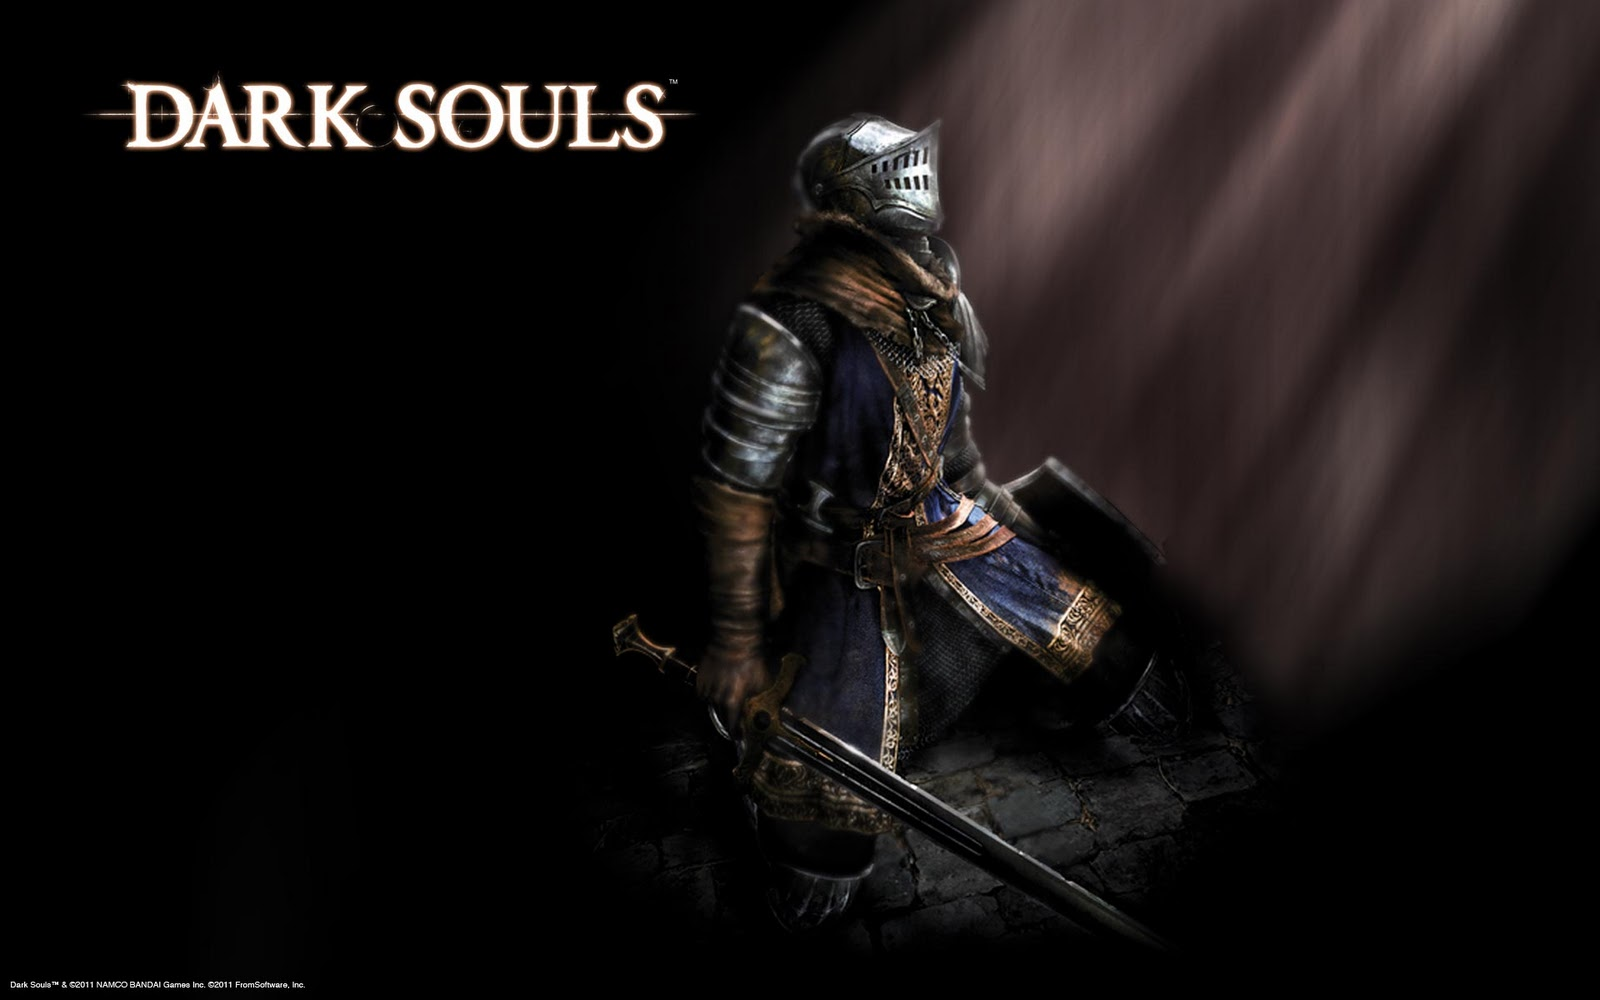 Dark Souls Review - The Parent s Guide to Video GamesDark Souls 2